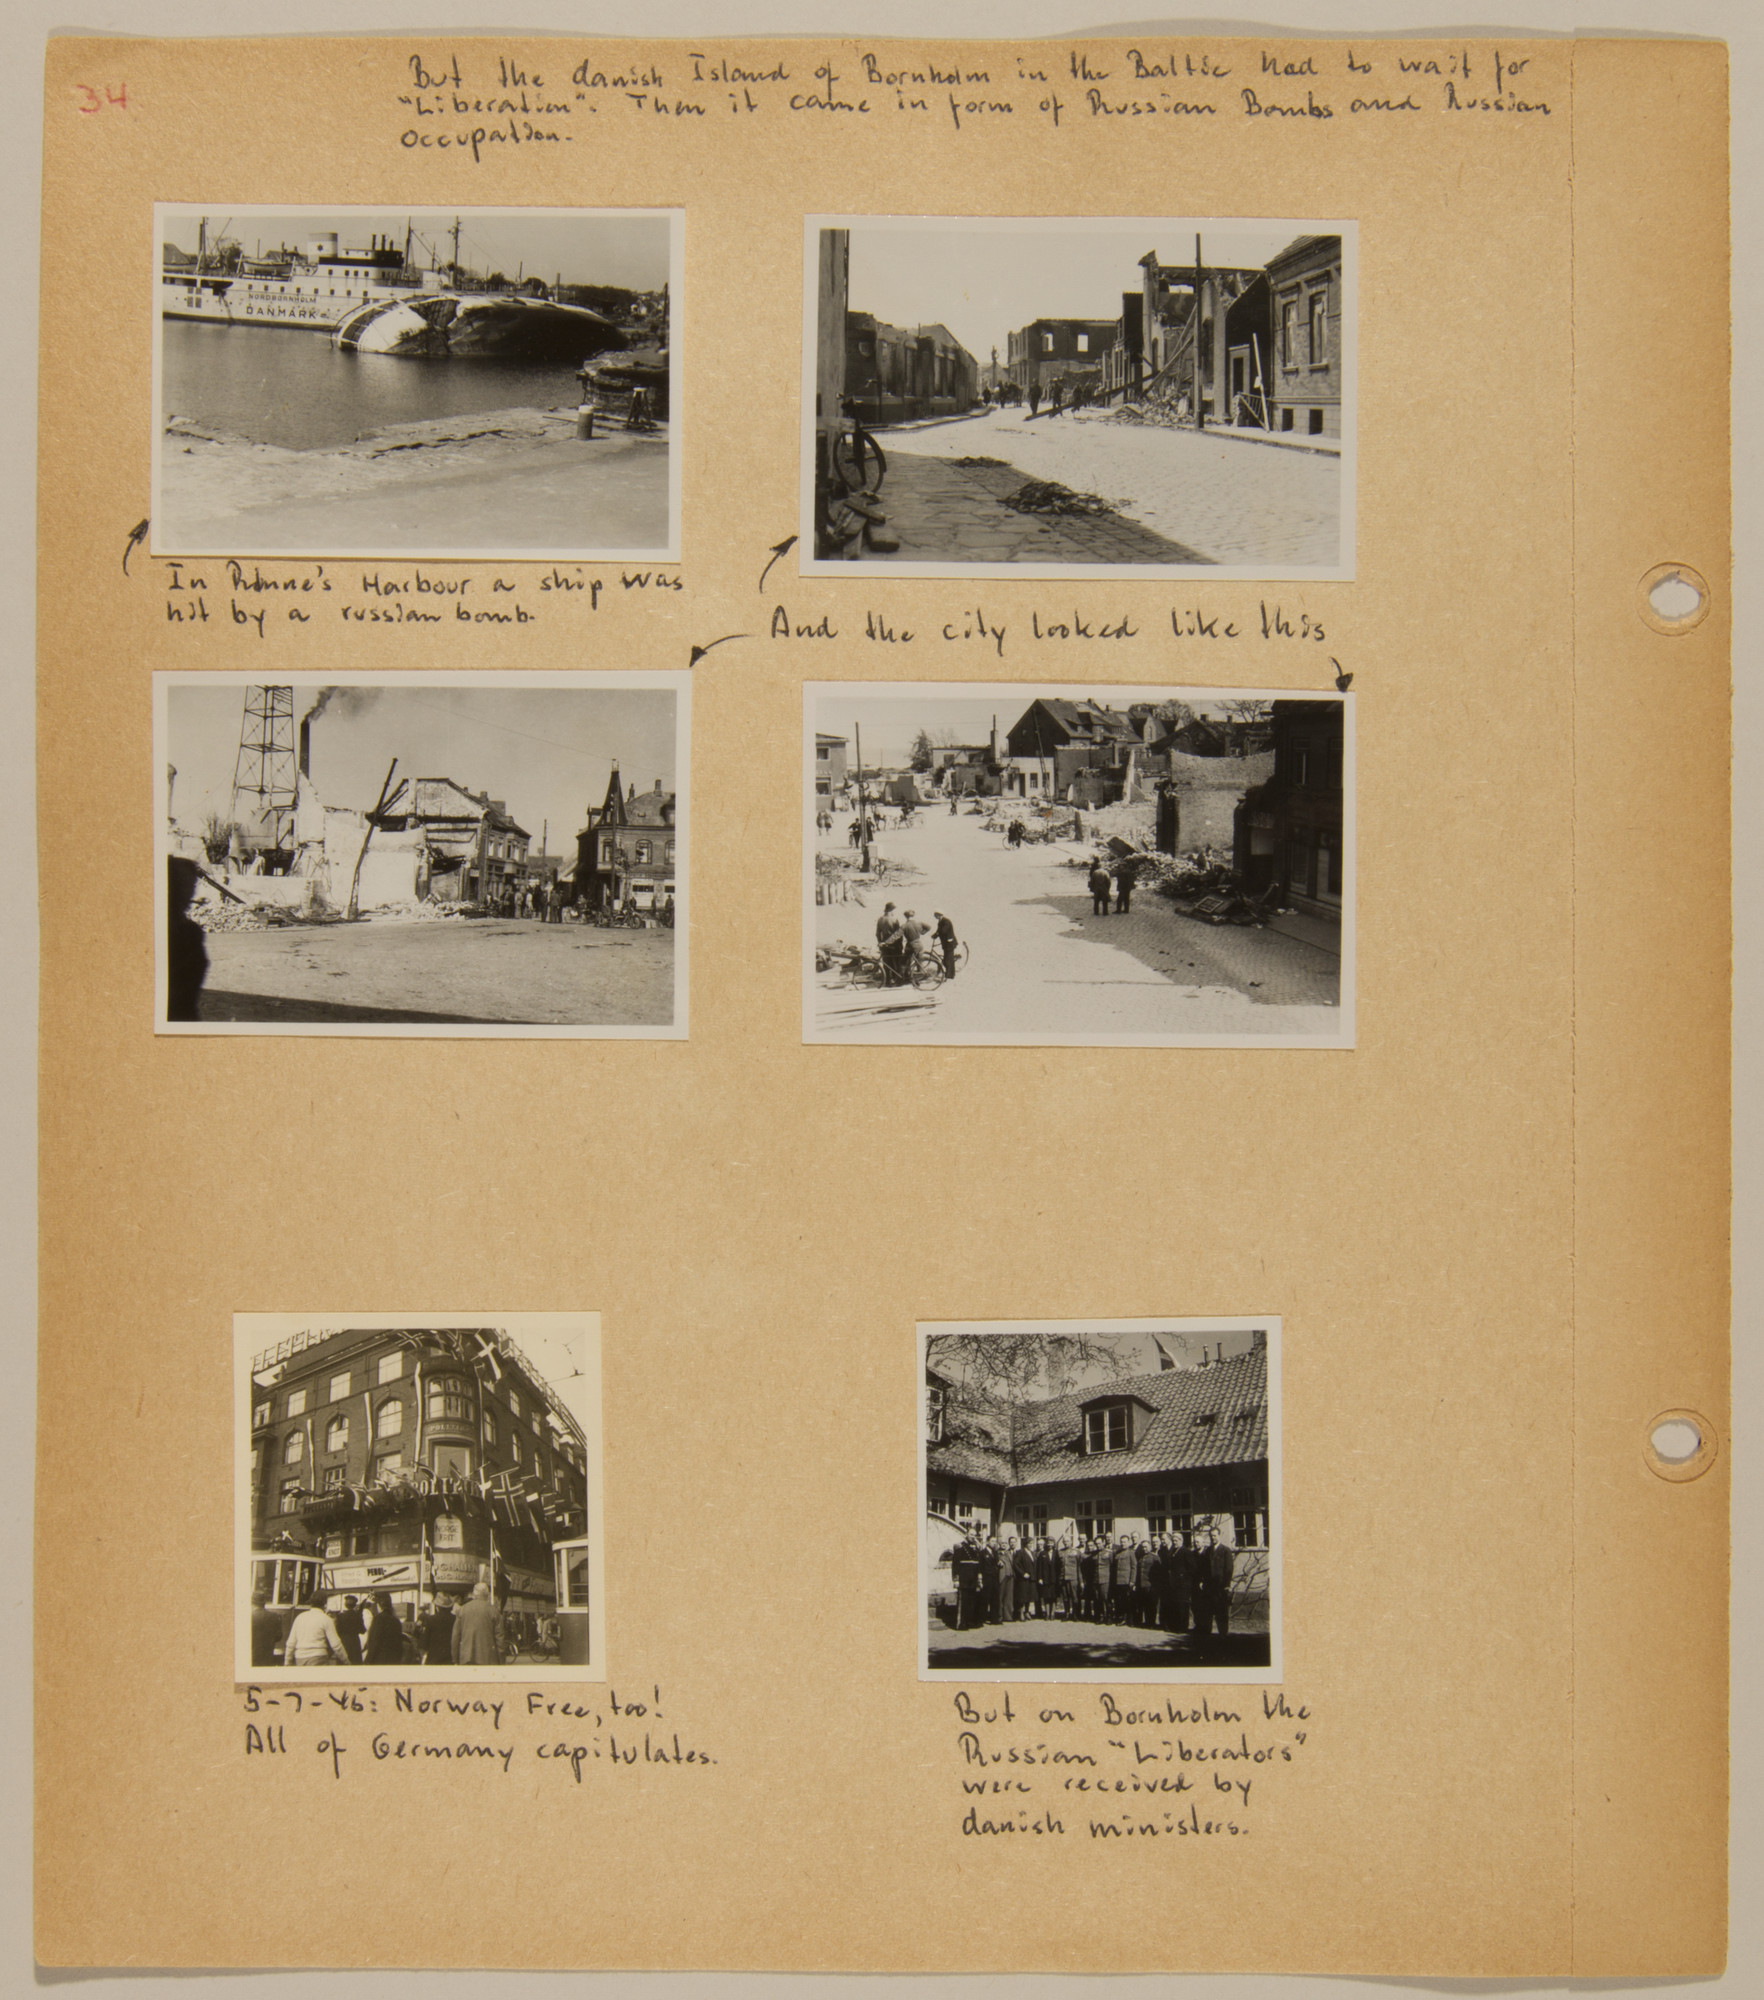 Page from volume five of a set of scrapbooks compiled by Bjorn Sibbern, a Danish policeman and resistance member, documenting the German occupation of Denmark.  This page contains photographs of the island of Bornholm that was occupied by the Soviets after the surrender of the Germans.